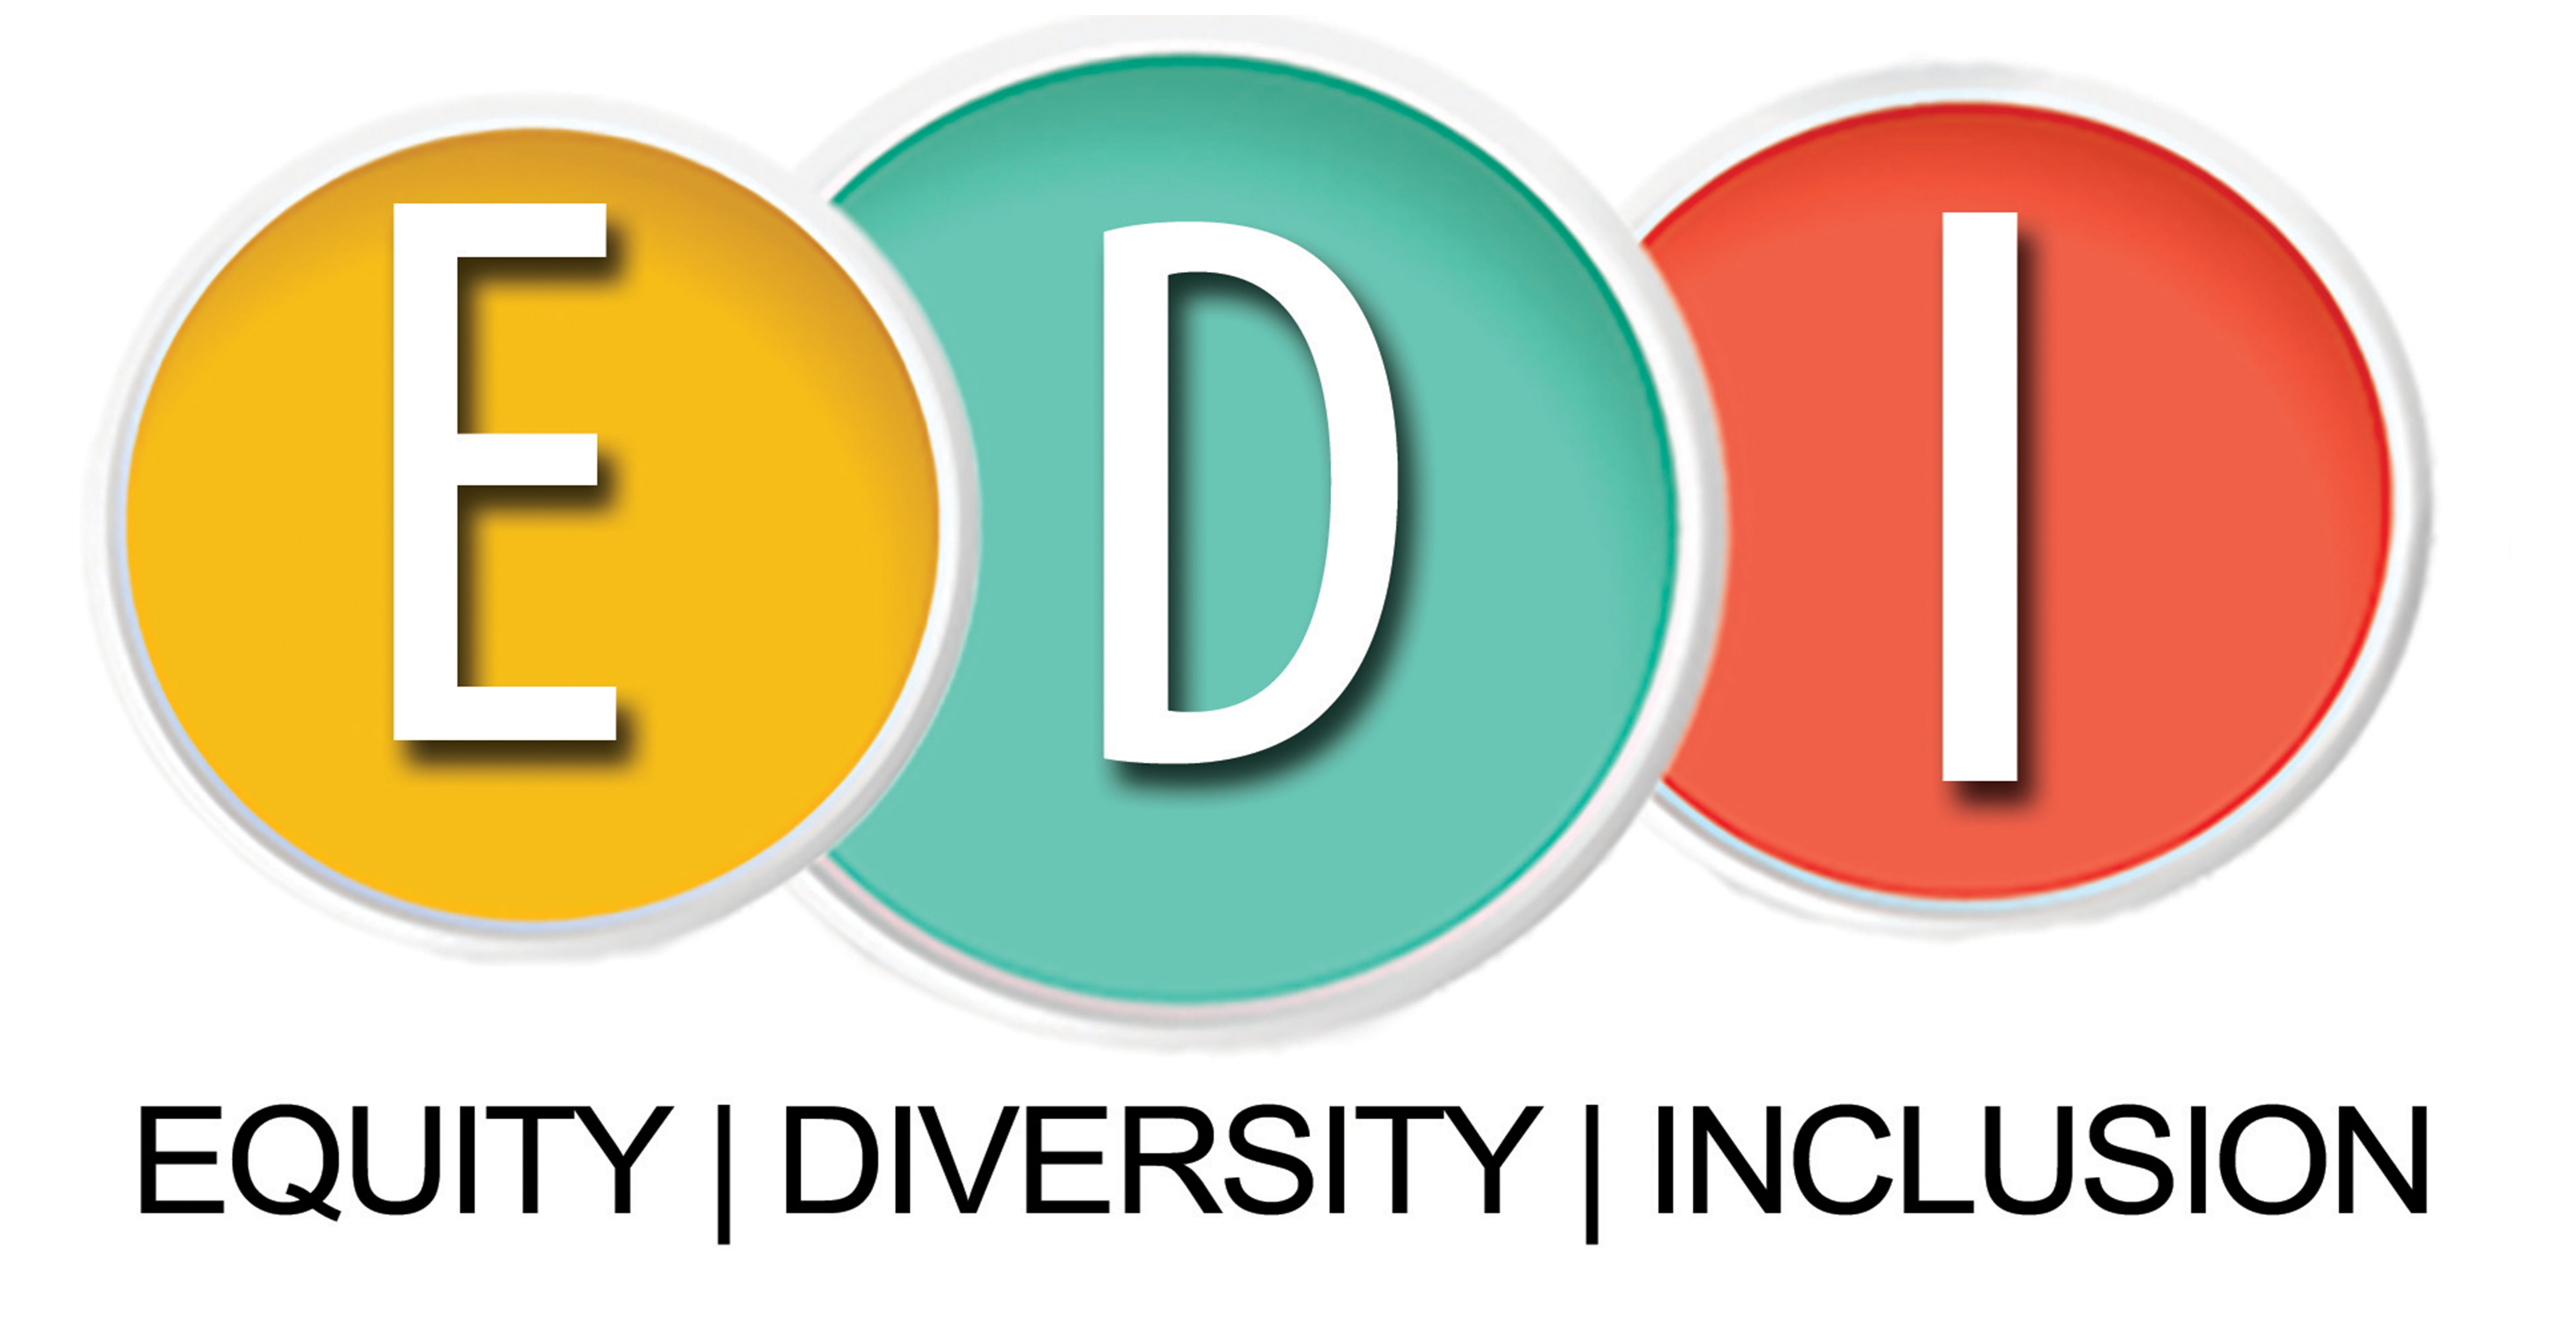 Equity Diversity and Inclusion Section